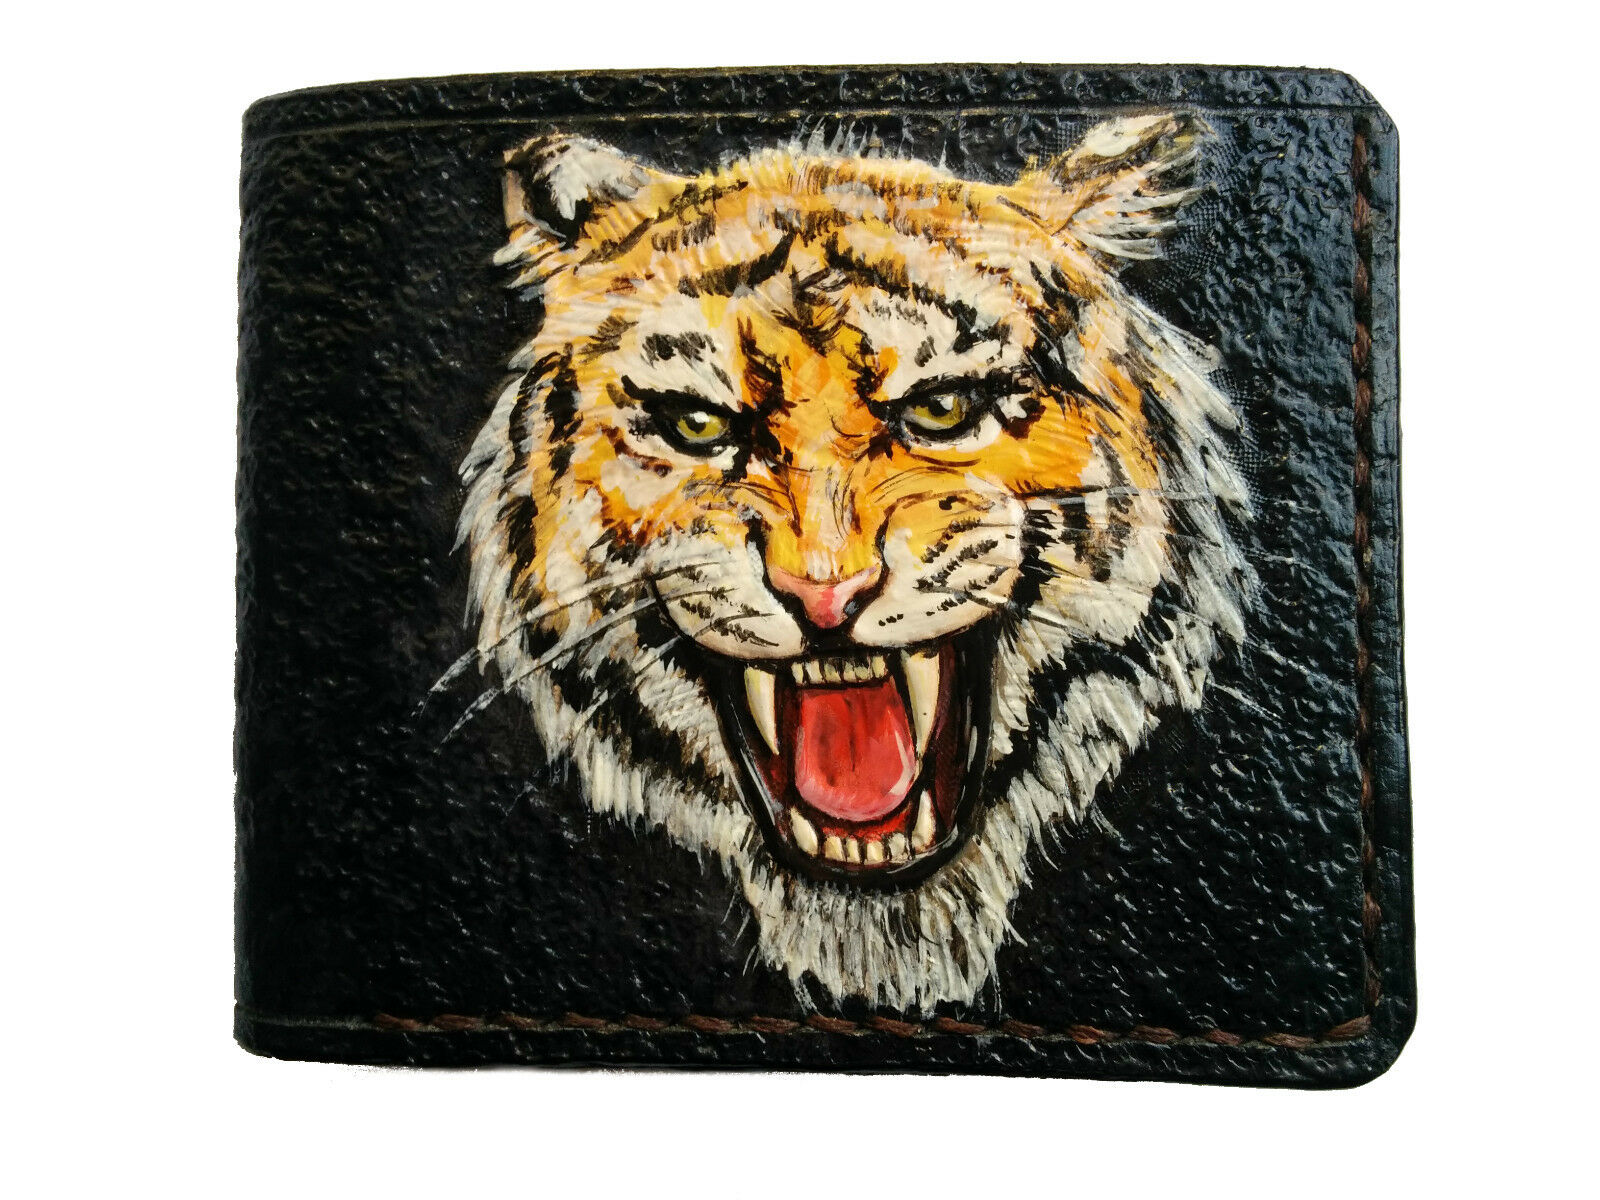 Men's 3D Genuine Leather Wallet, Hand-Carved, Hand-Painted, Tooled, Bengal Tiger